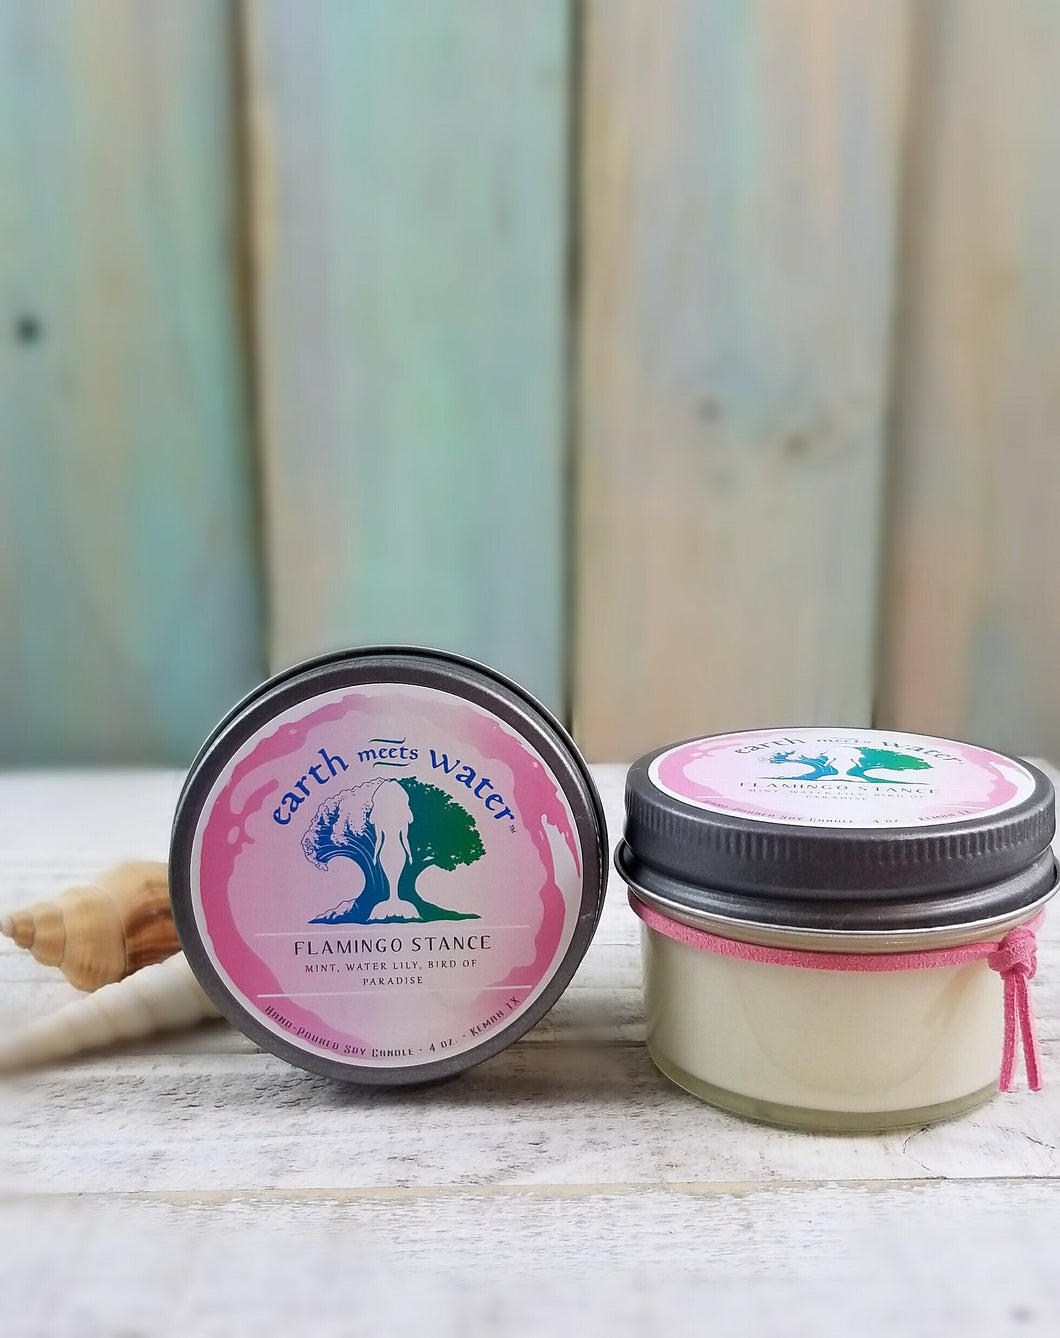 Flamingo Stance - 4oz Soy Candle